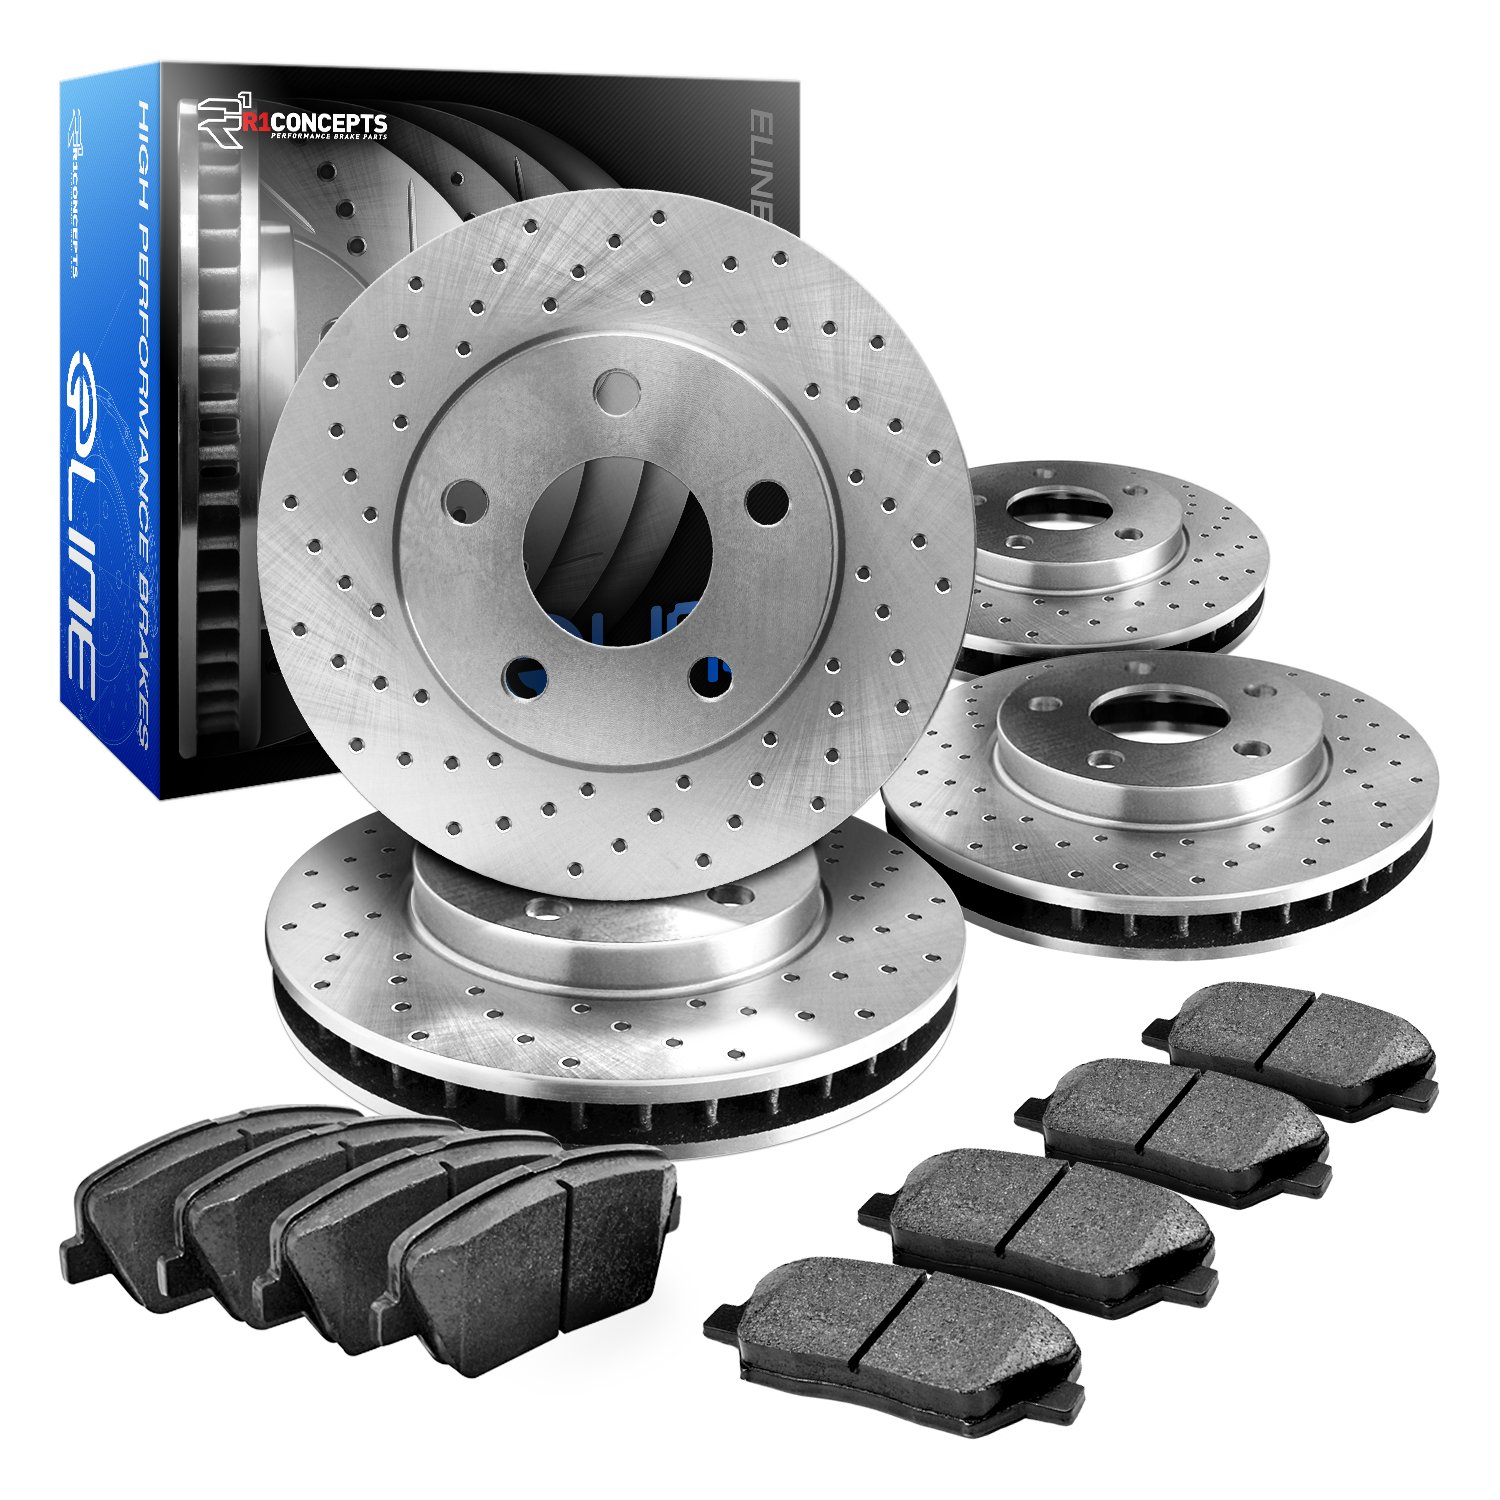 R1 Concepts CEX11013 Eline Series Cross-Drilled Rotors And Ceramic Pads Kit - Front and Rear R1Concepts